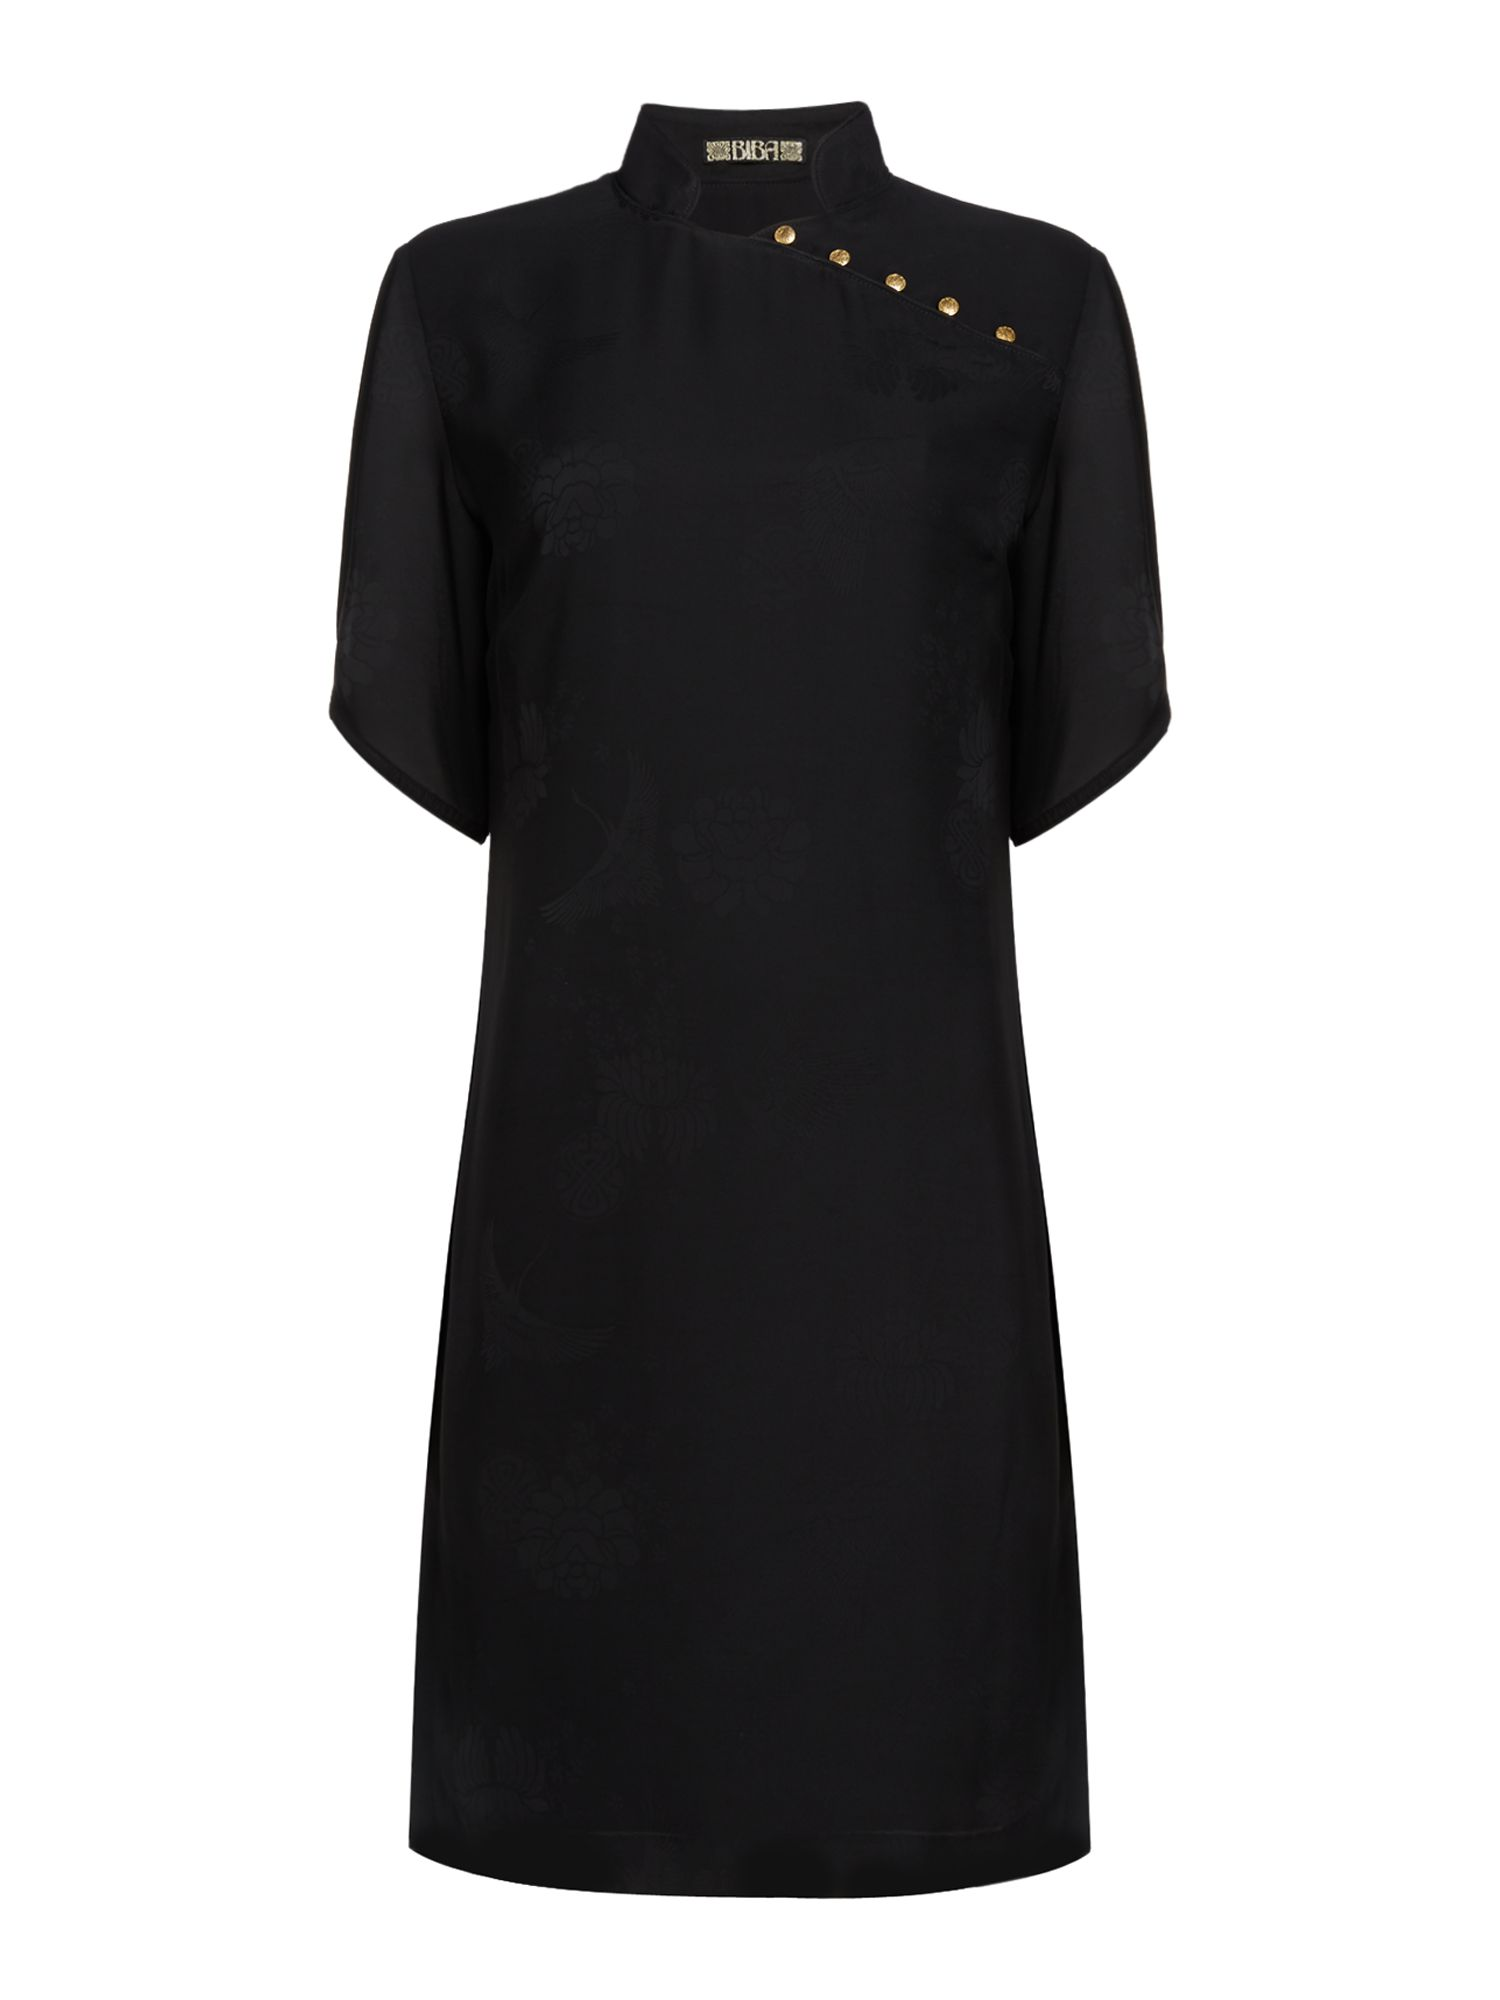 Biba Oriental jacquard dress, Black